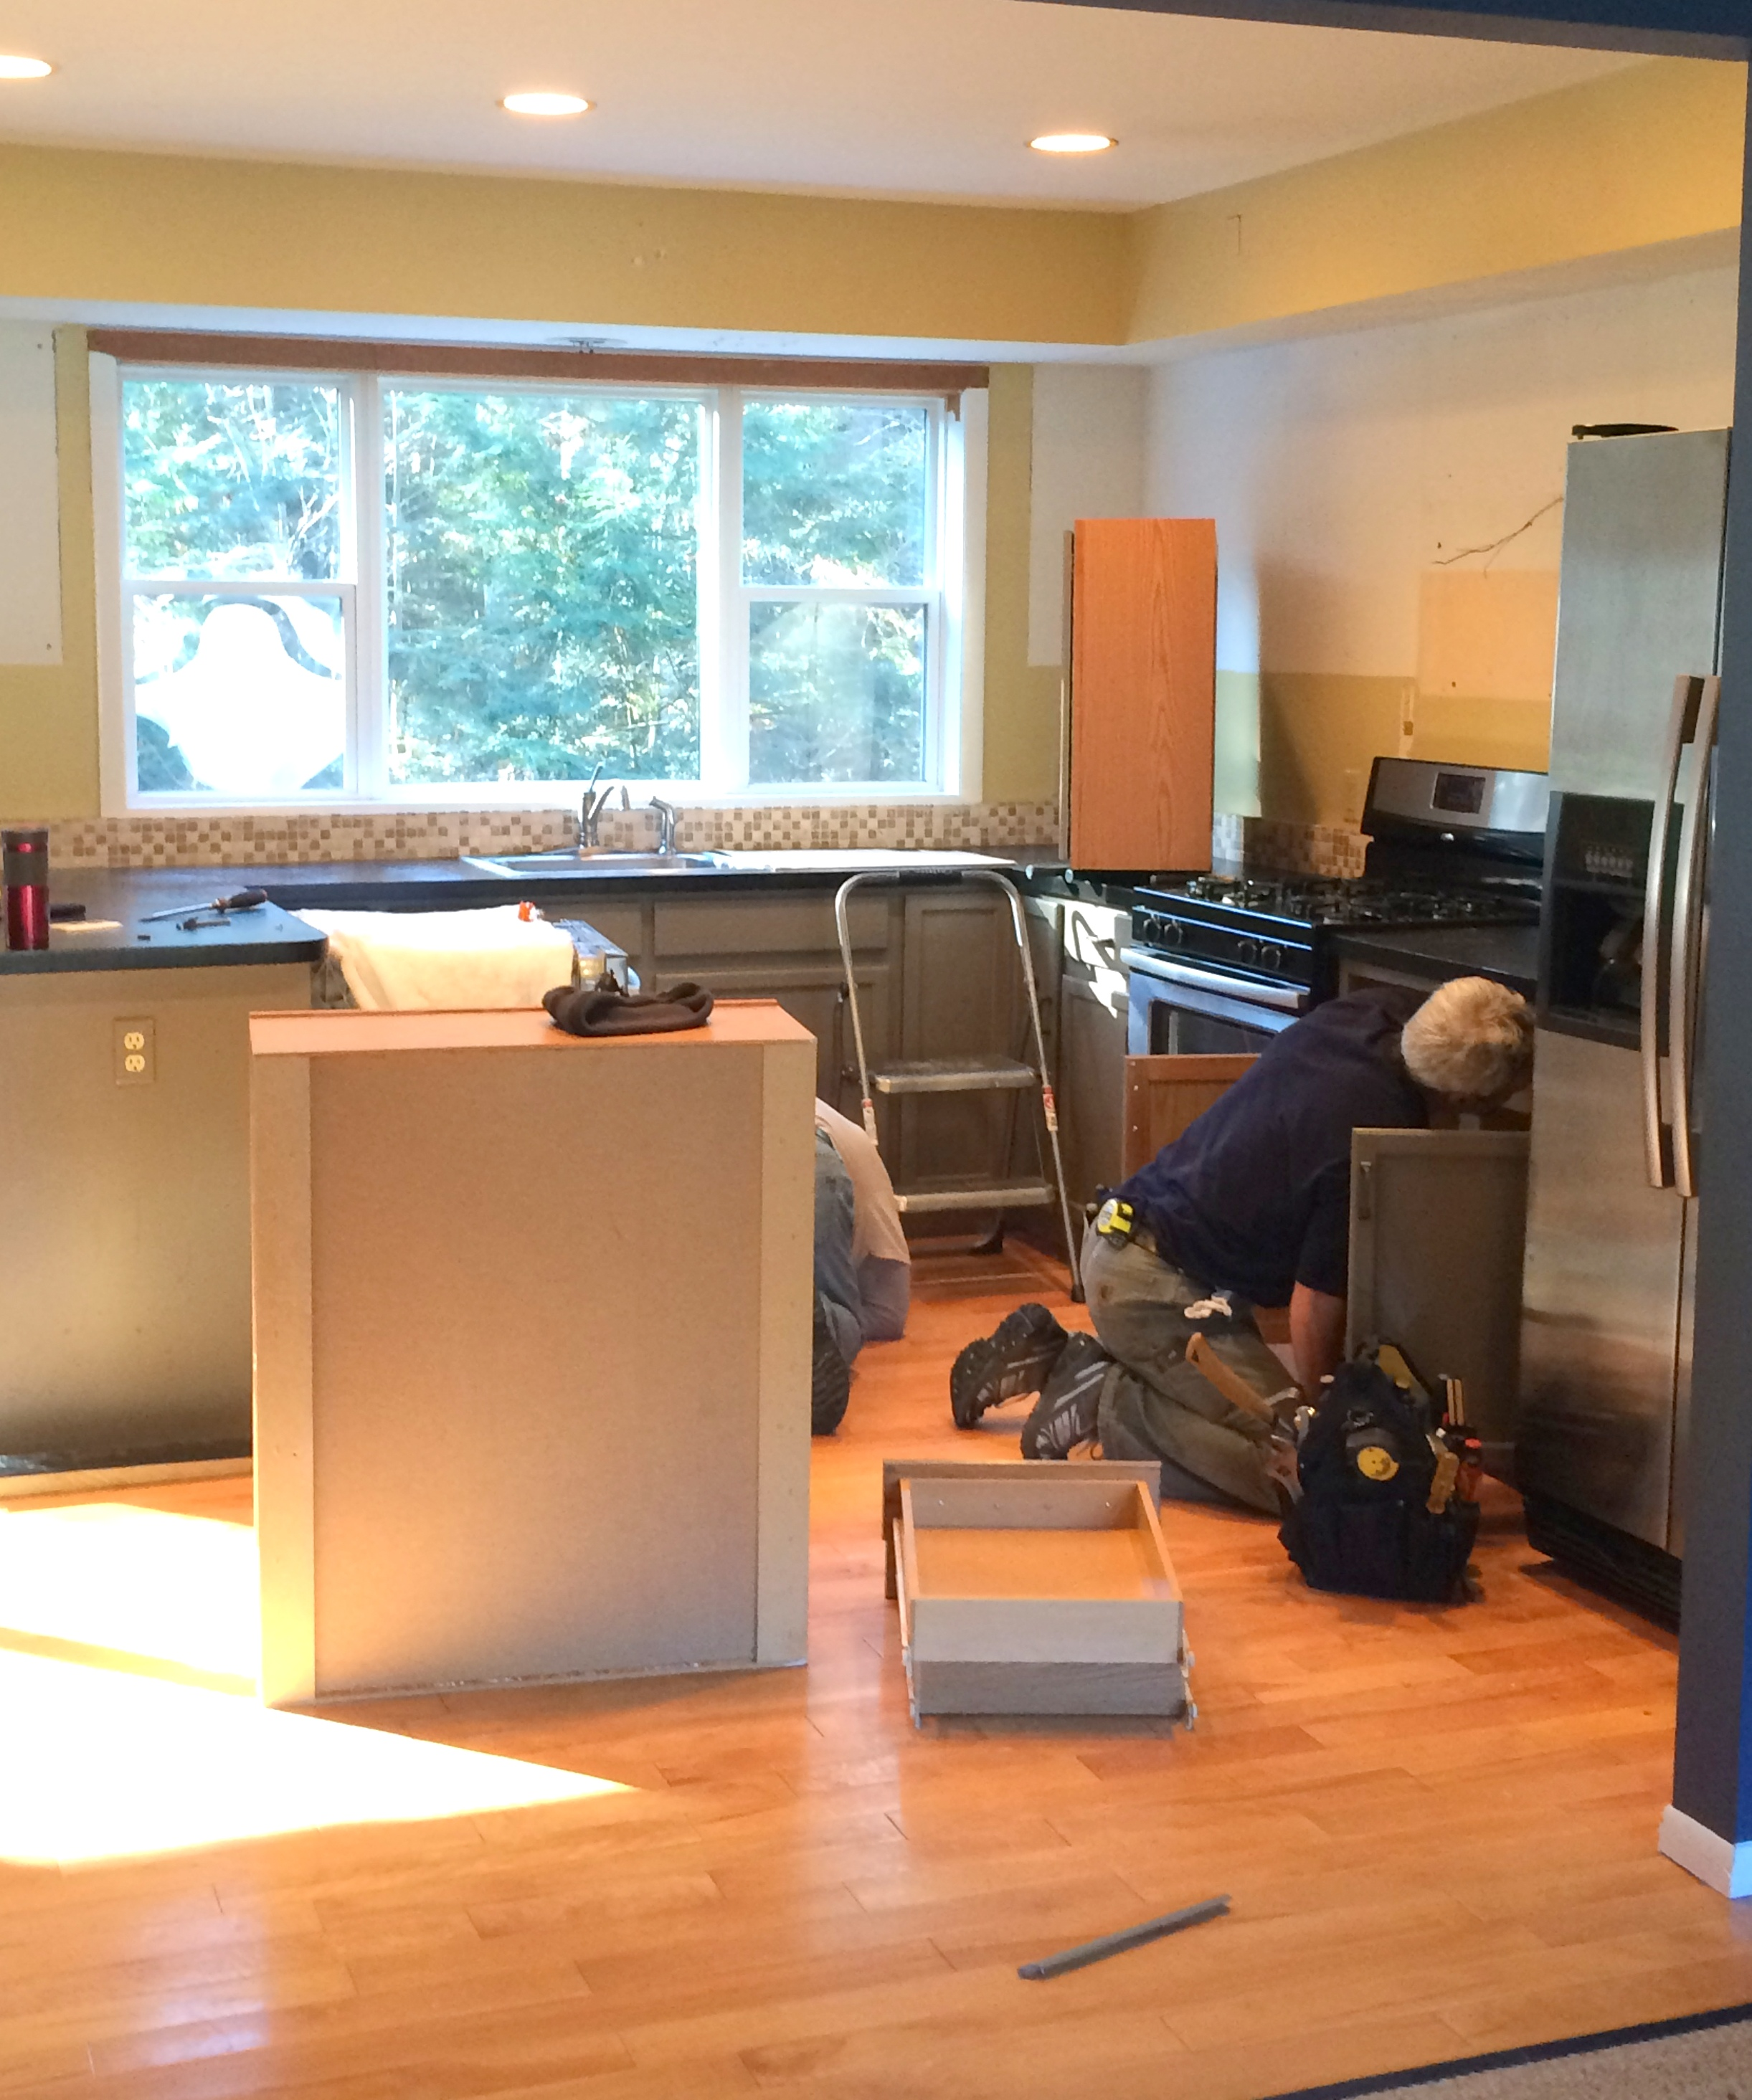 Demo Day: Steps To Demolishing An Existing Kitchen + Creating A New  Renovated Space.